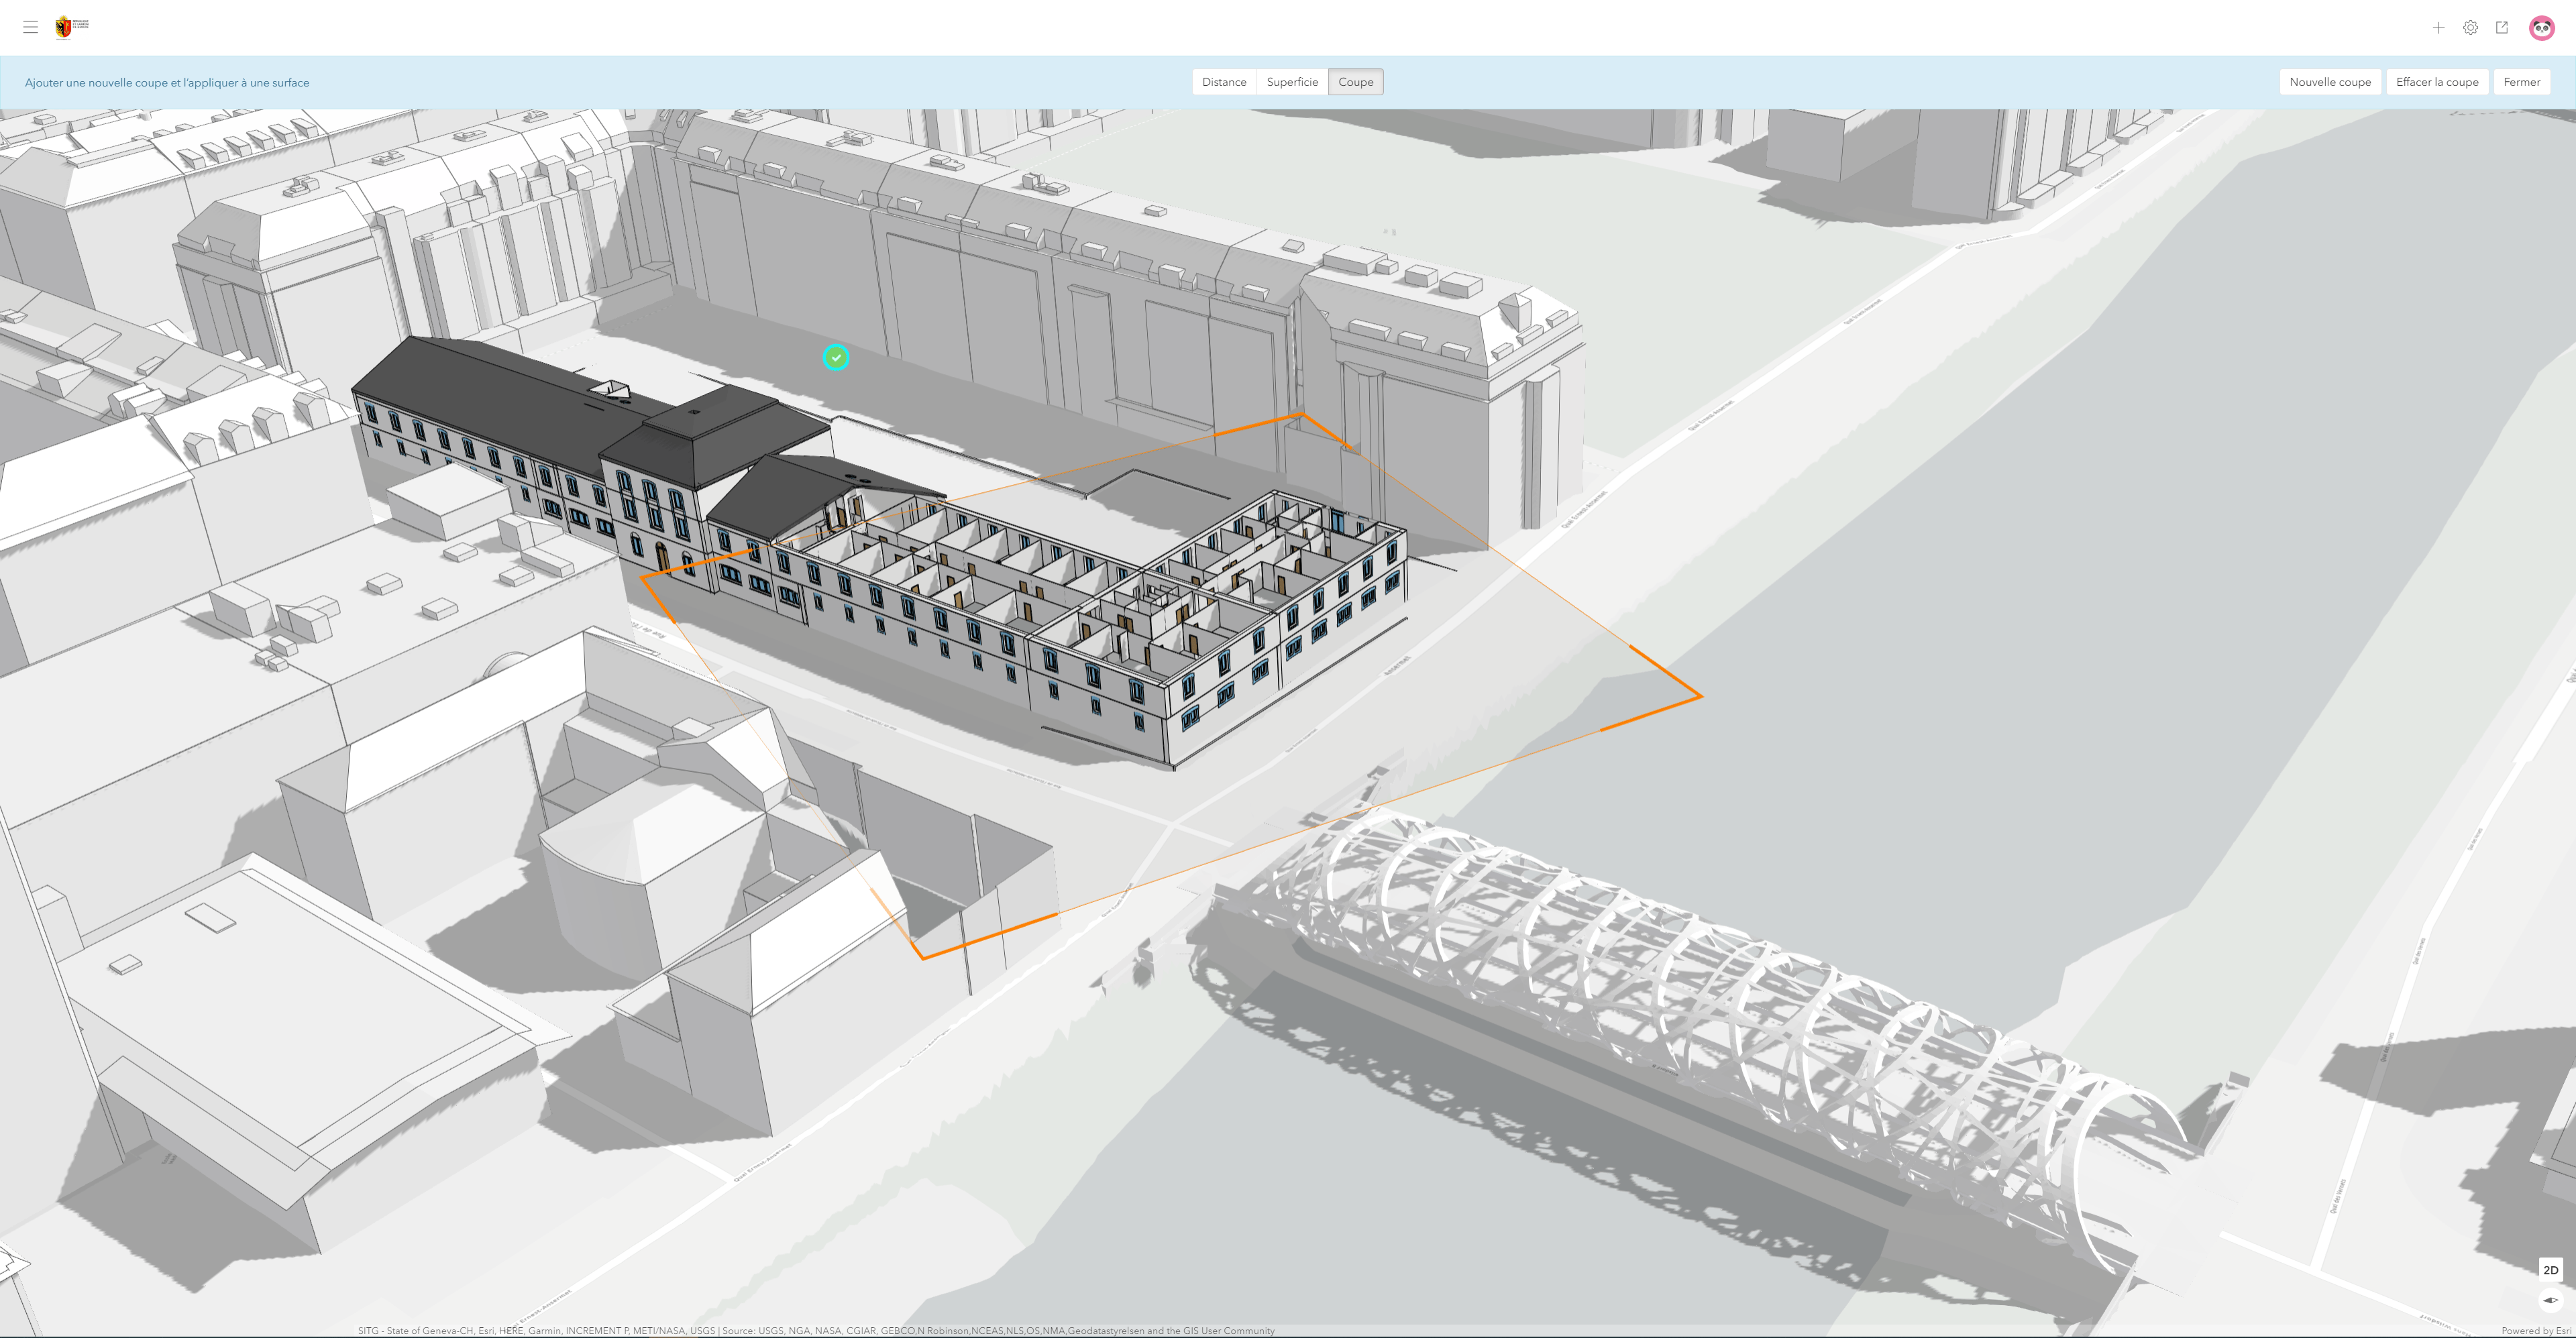 Detailed model of a bridge and the city's ancient Arsenal building visualized in Urban.